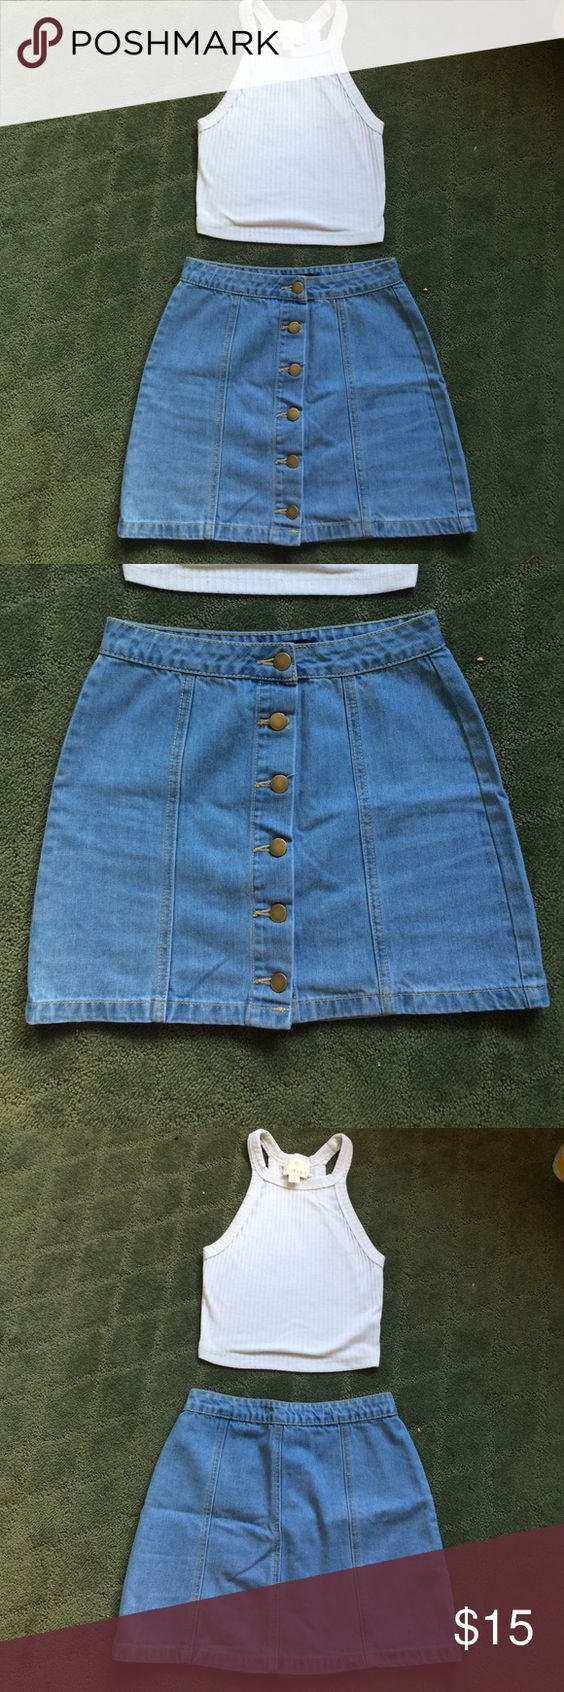 Denim skirt Denim skirt with buttons up the front, barely worn, great condition, lighter blue denim size small Skirts